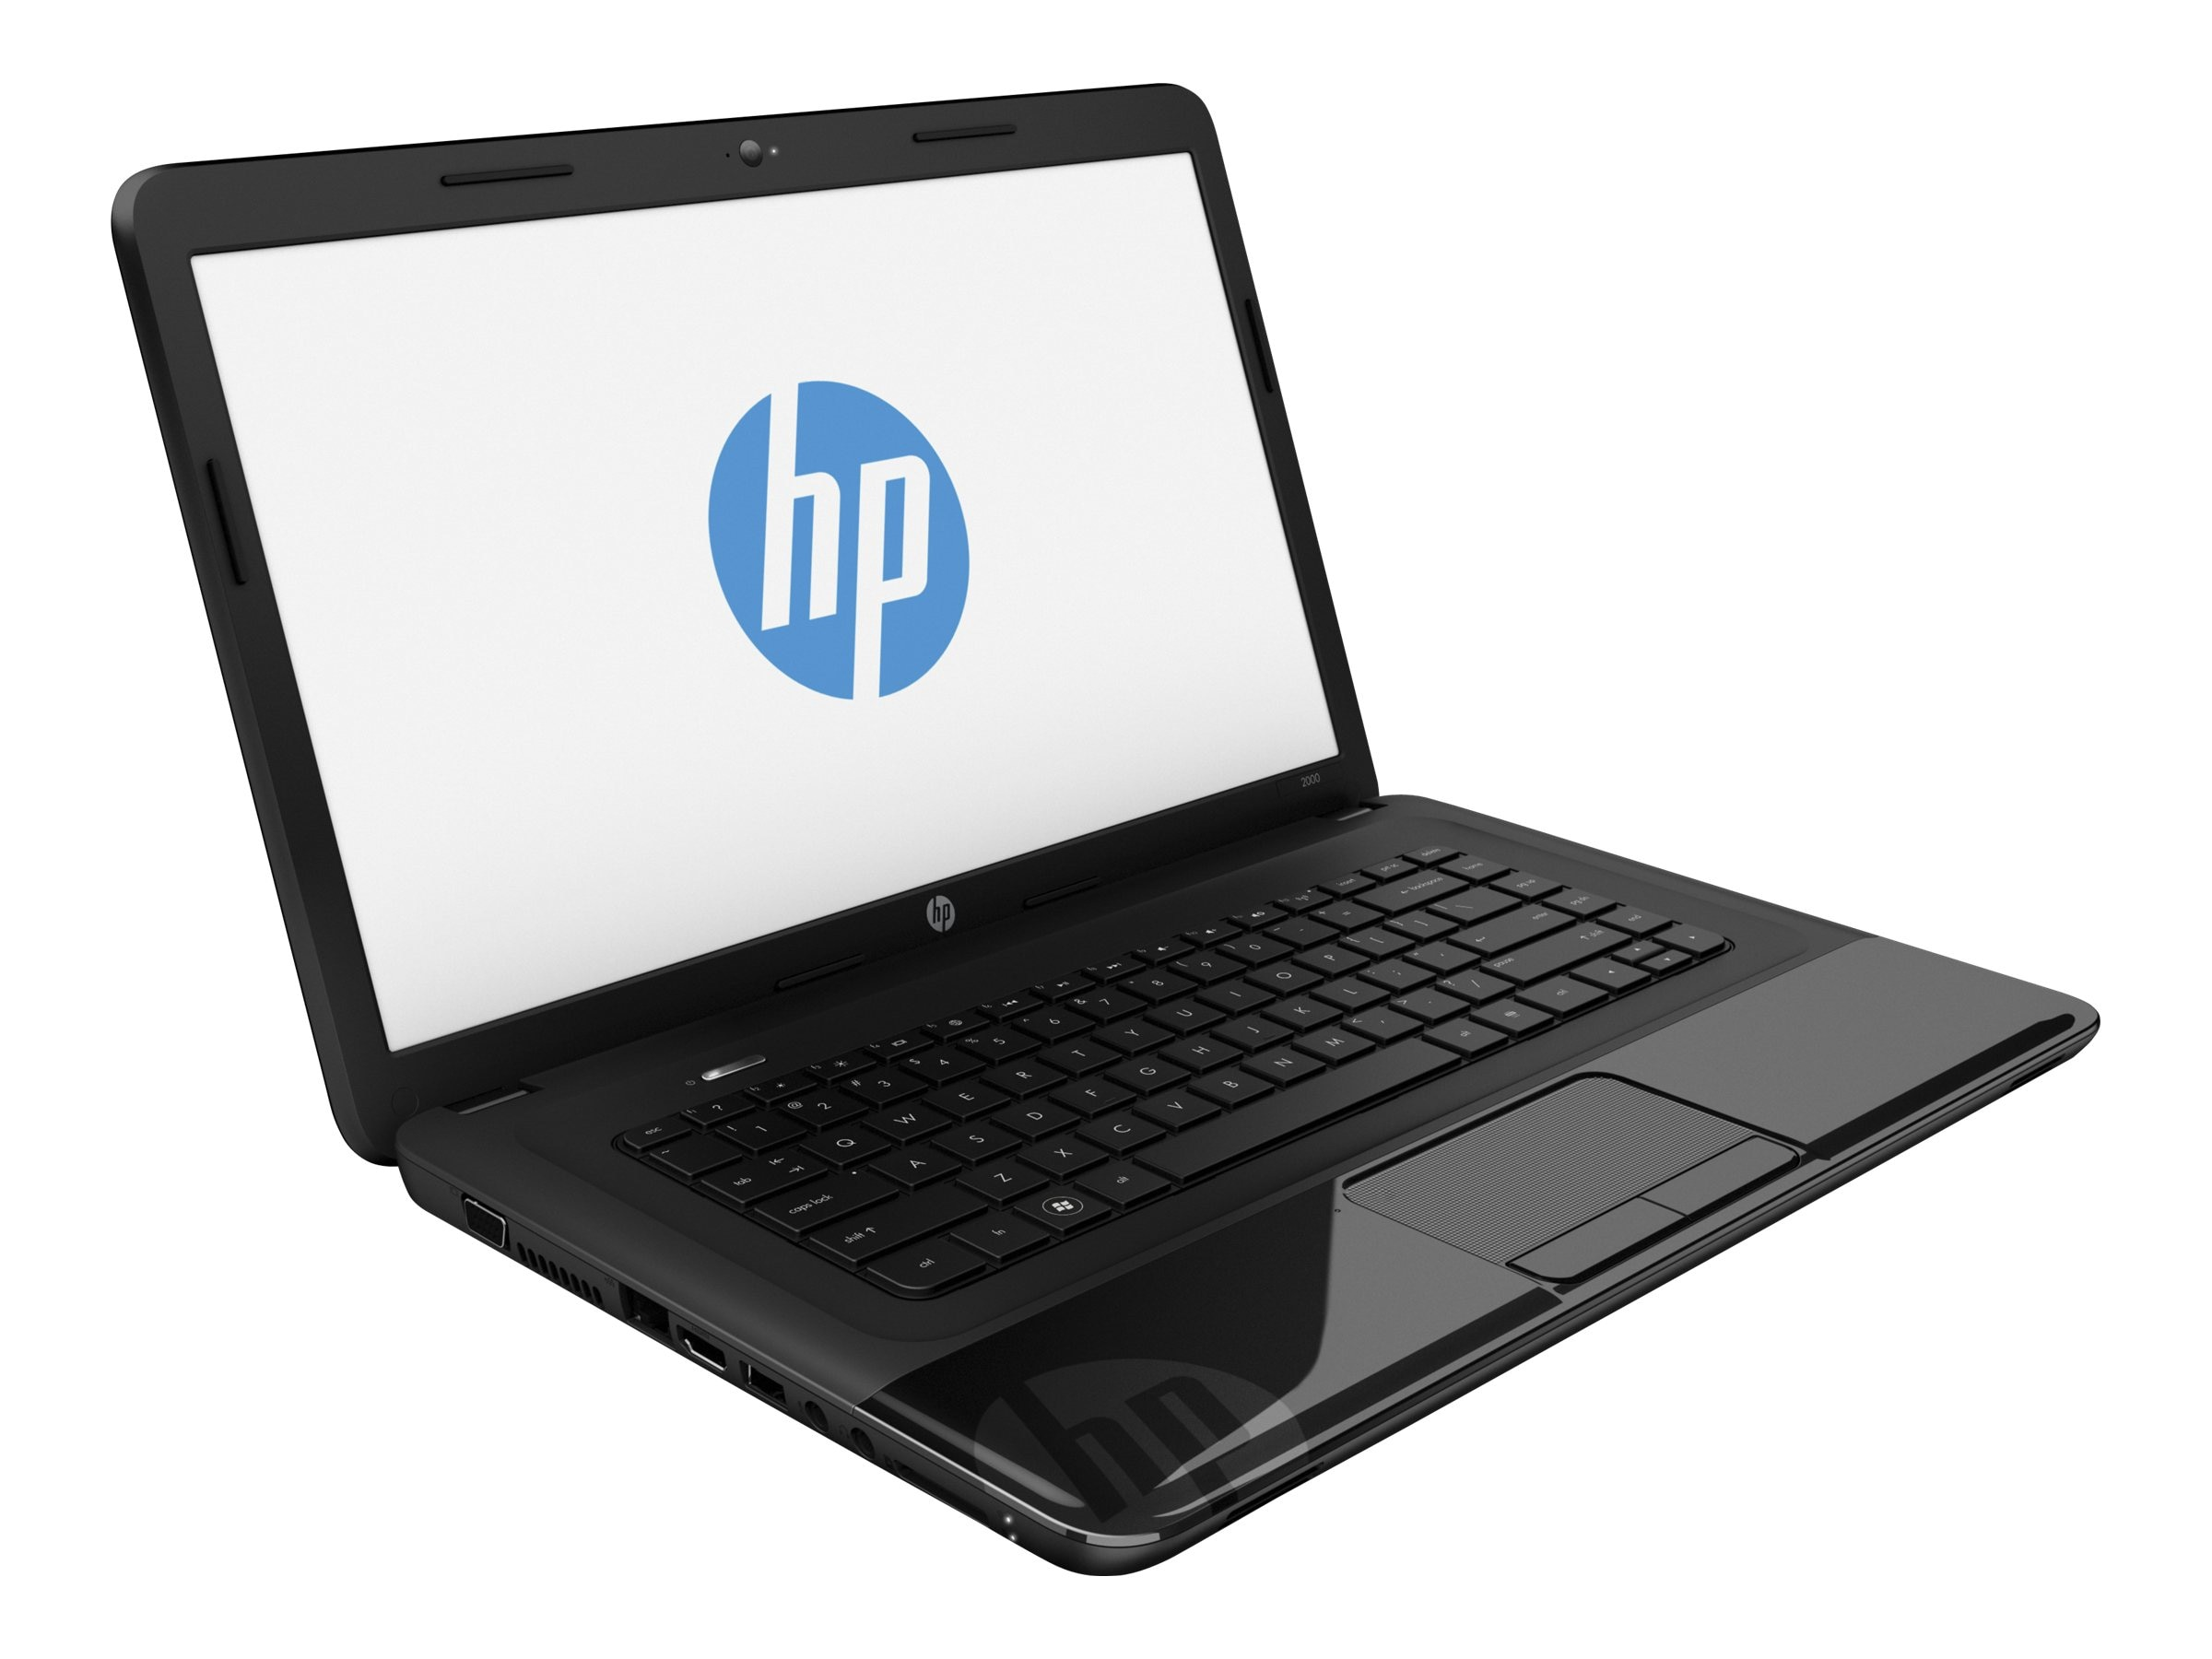 HP 2000-2B24nr Notebook, C2M60UA#ABA